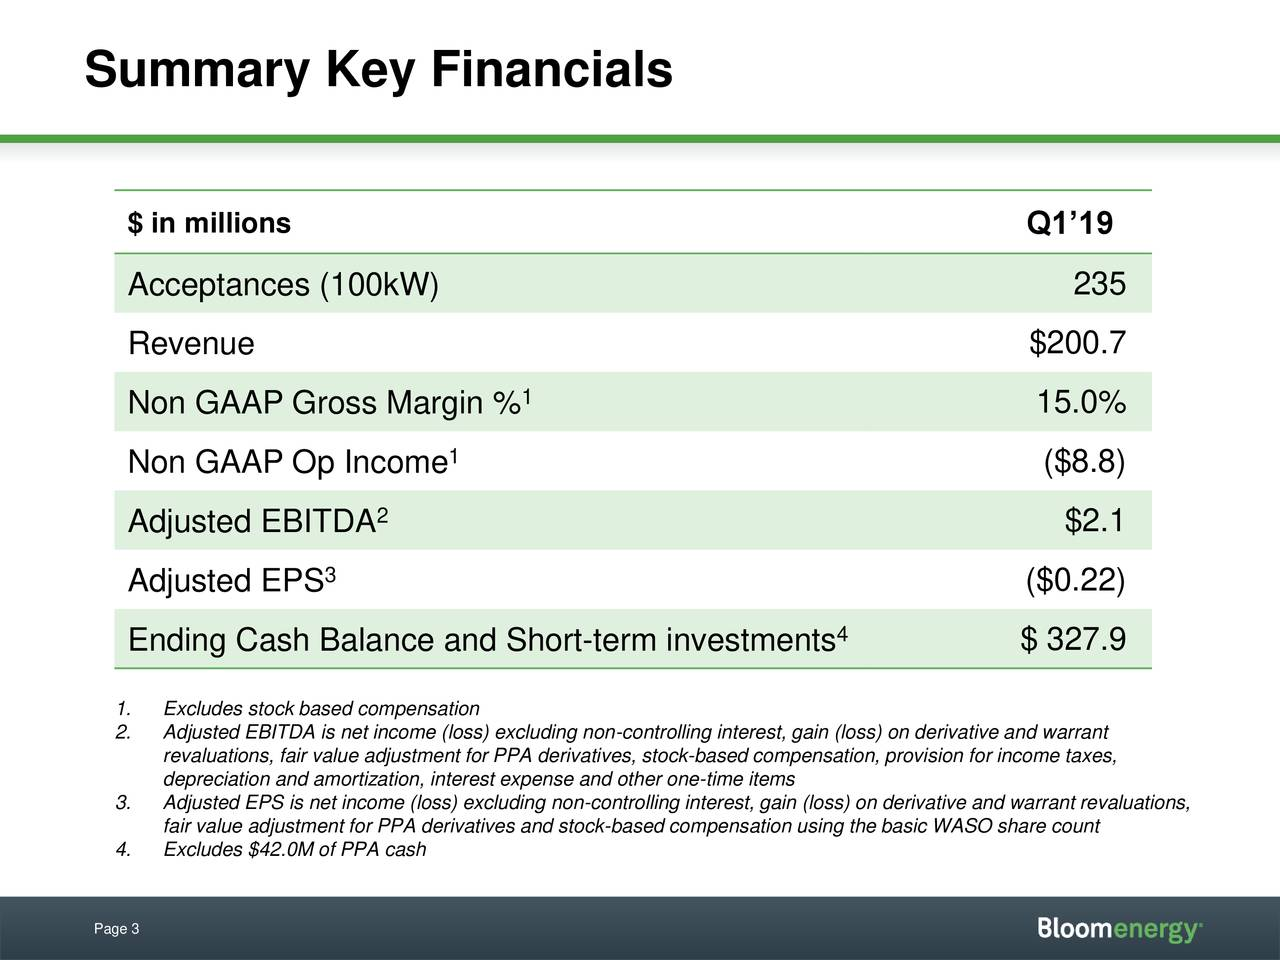 $ in millions Q1'19 Acceptances (100kW) 235 Revenue $200.7 1 15.0% Non GAAP Gross Margin % 1 Non GAAP Op Income ($8.8) Adjusted EBITDA 2 $2.1 Adjusted EPS 3 ($0.22) Ending Cash Balance and Short-term investments 4 $ 327.9 1. Excludes stock based compensation 2. Adjusted EBITDA is net income (loss) excluding non-controlling interest, gain (loss) on derivative and warrant depreciation and amortization, interest expense and other one-time itemspensation, provision for income taxes, 3. Adjusted EPS is net income (loss) excluding non-controlling interest, gain (loss) on derivative and warrant revaluations, fair value adjustment for PPA derivatives and stock-based compensation using the basic WASO share count 4. Excludes $42.0M of PPA cash Page 3